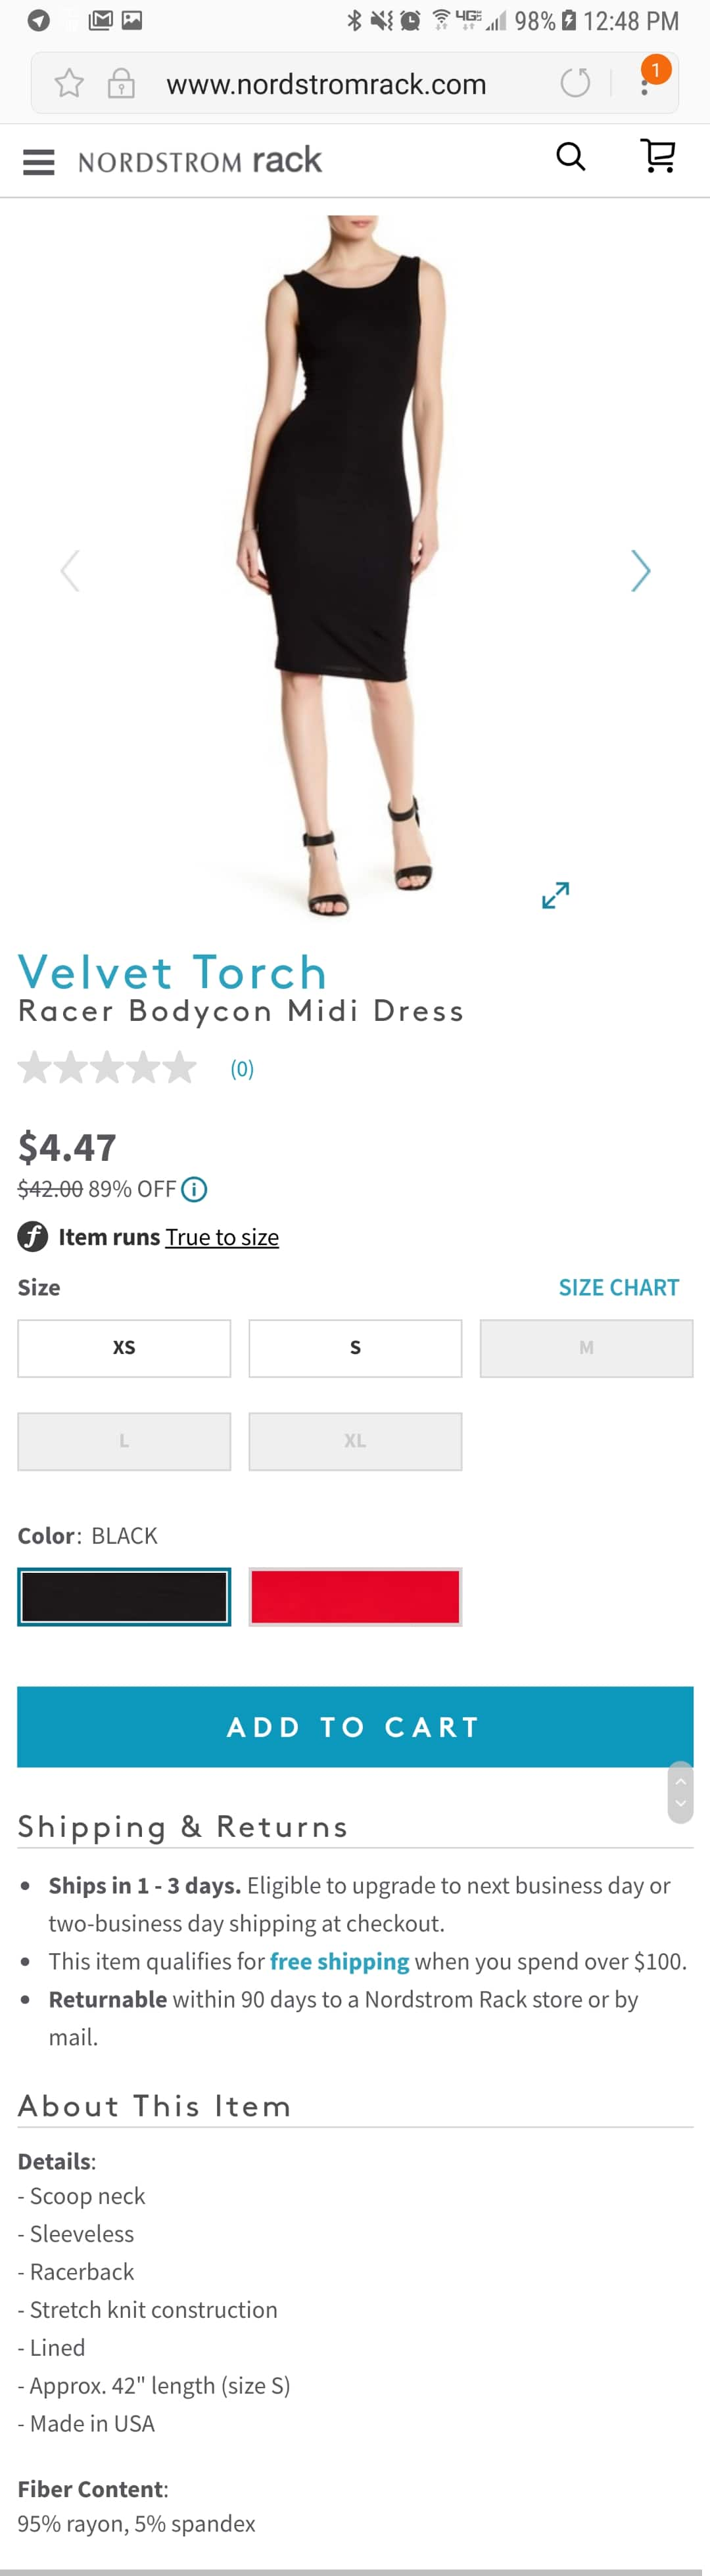 Velvet TorchRacer Bodycon Midi Dress(size S)  $4.47 + shipping @ Nordstrom Rack